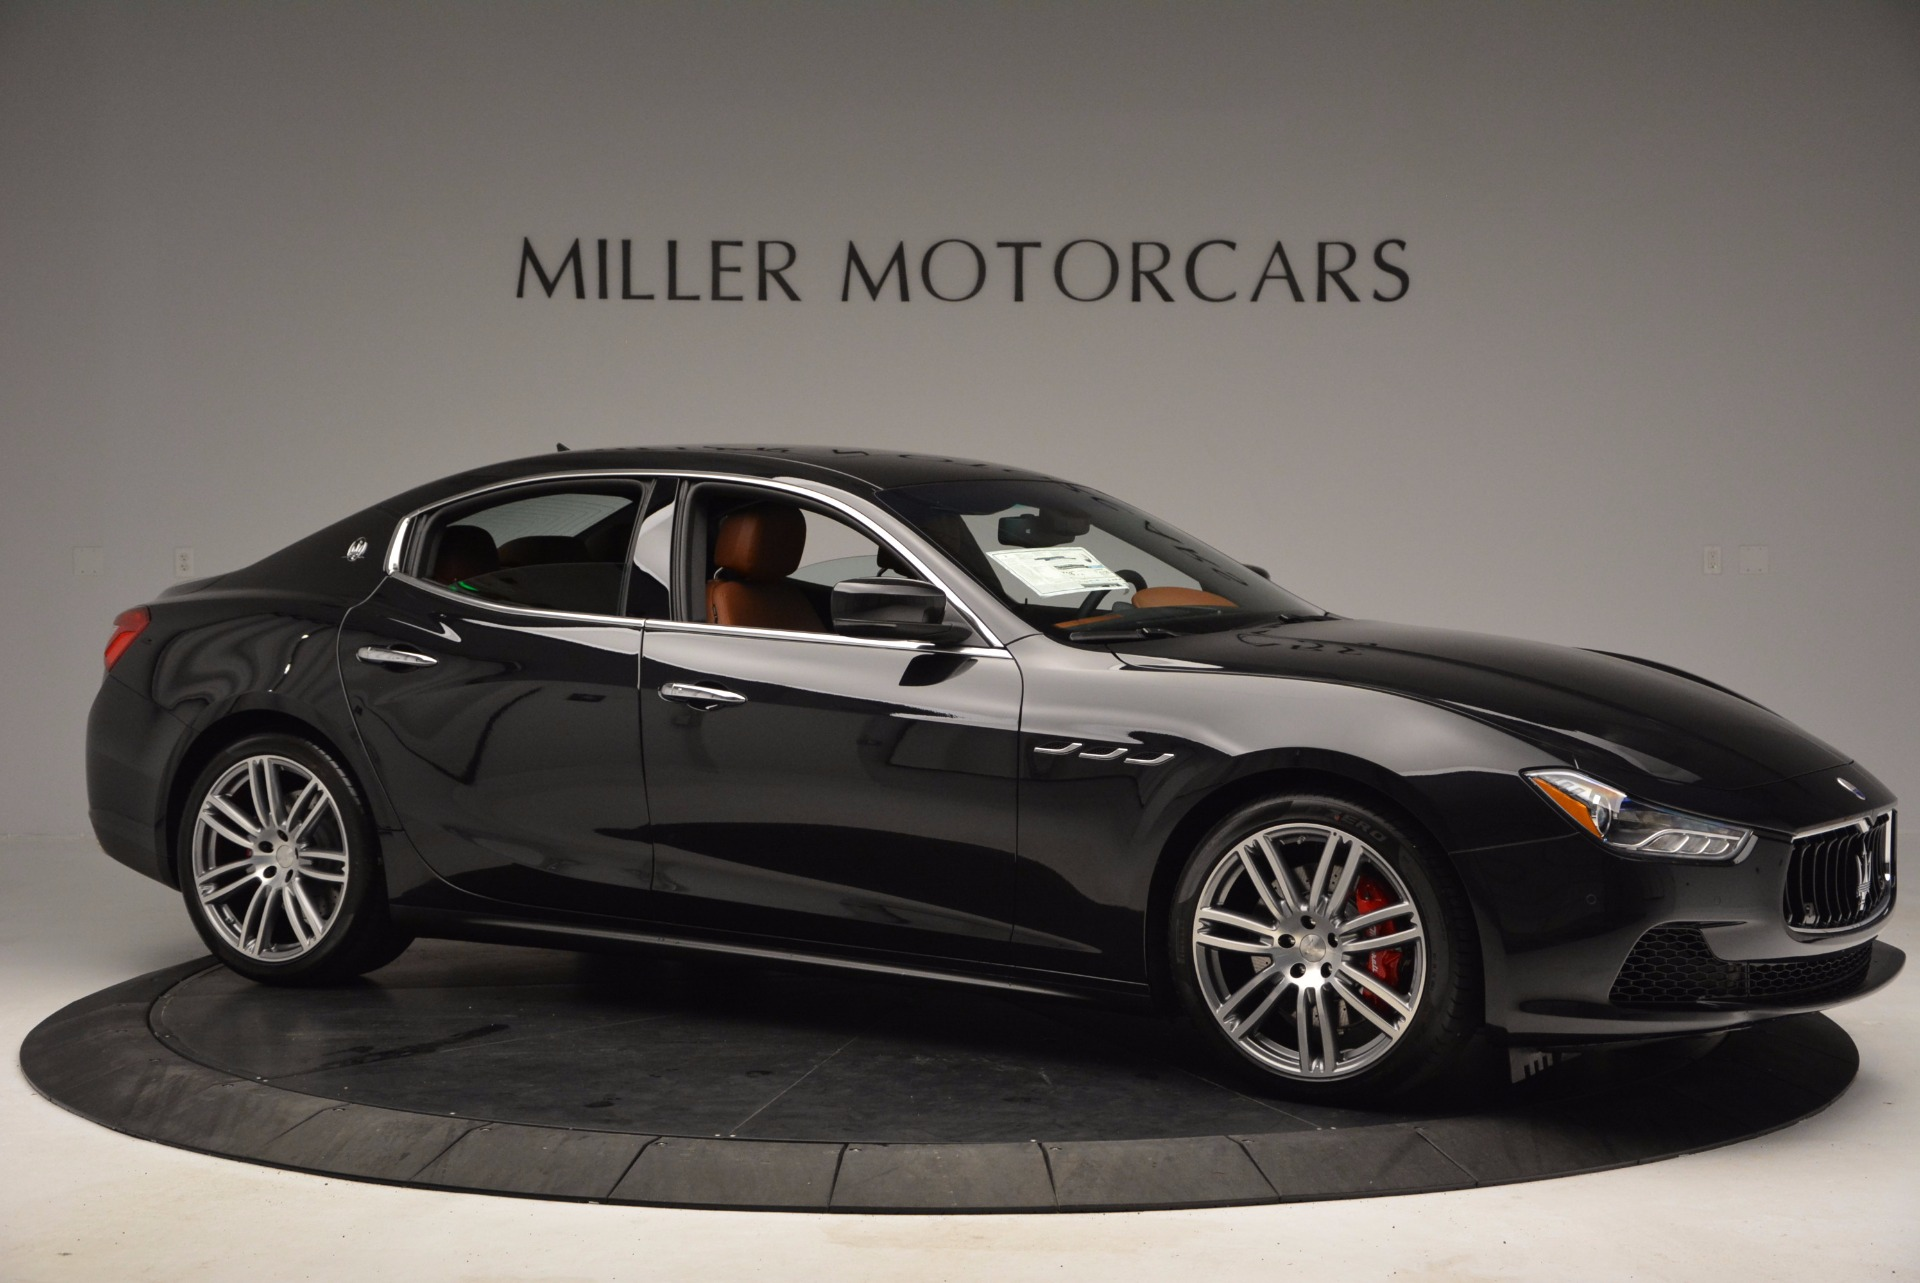 Used 2014 Maserati Ghibli S Q4 For Sale In Greenwich, CT. Alfa Romeo of Greenwich, 7281 1587_p10